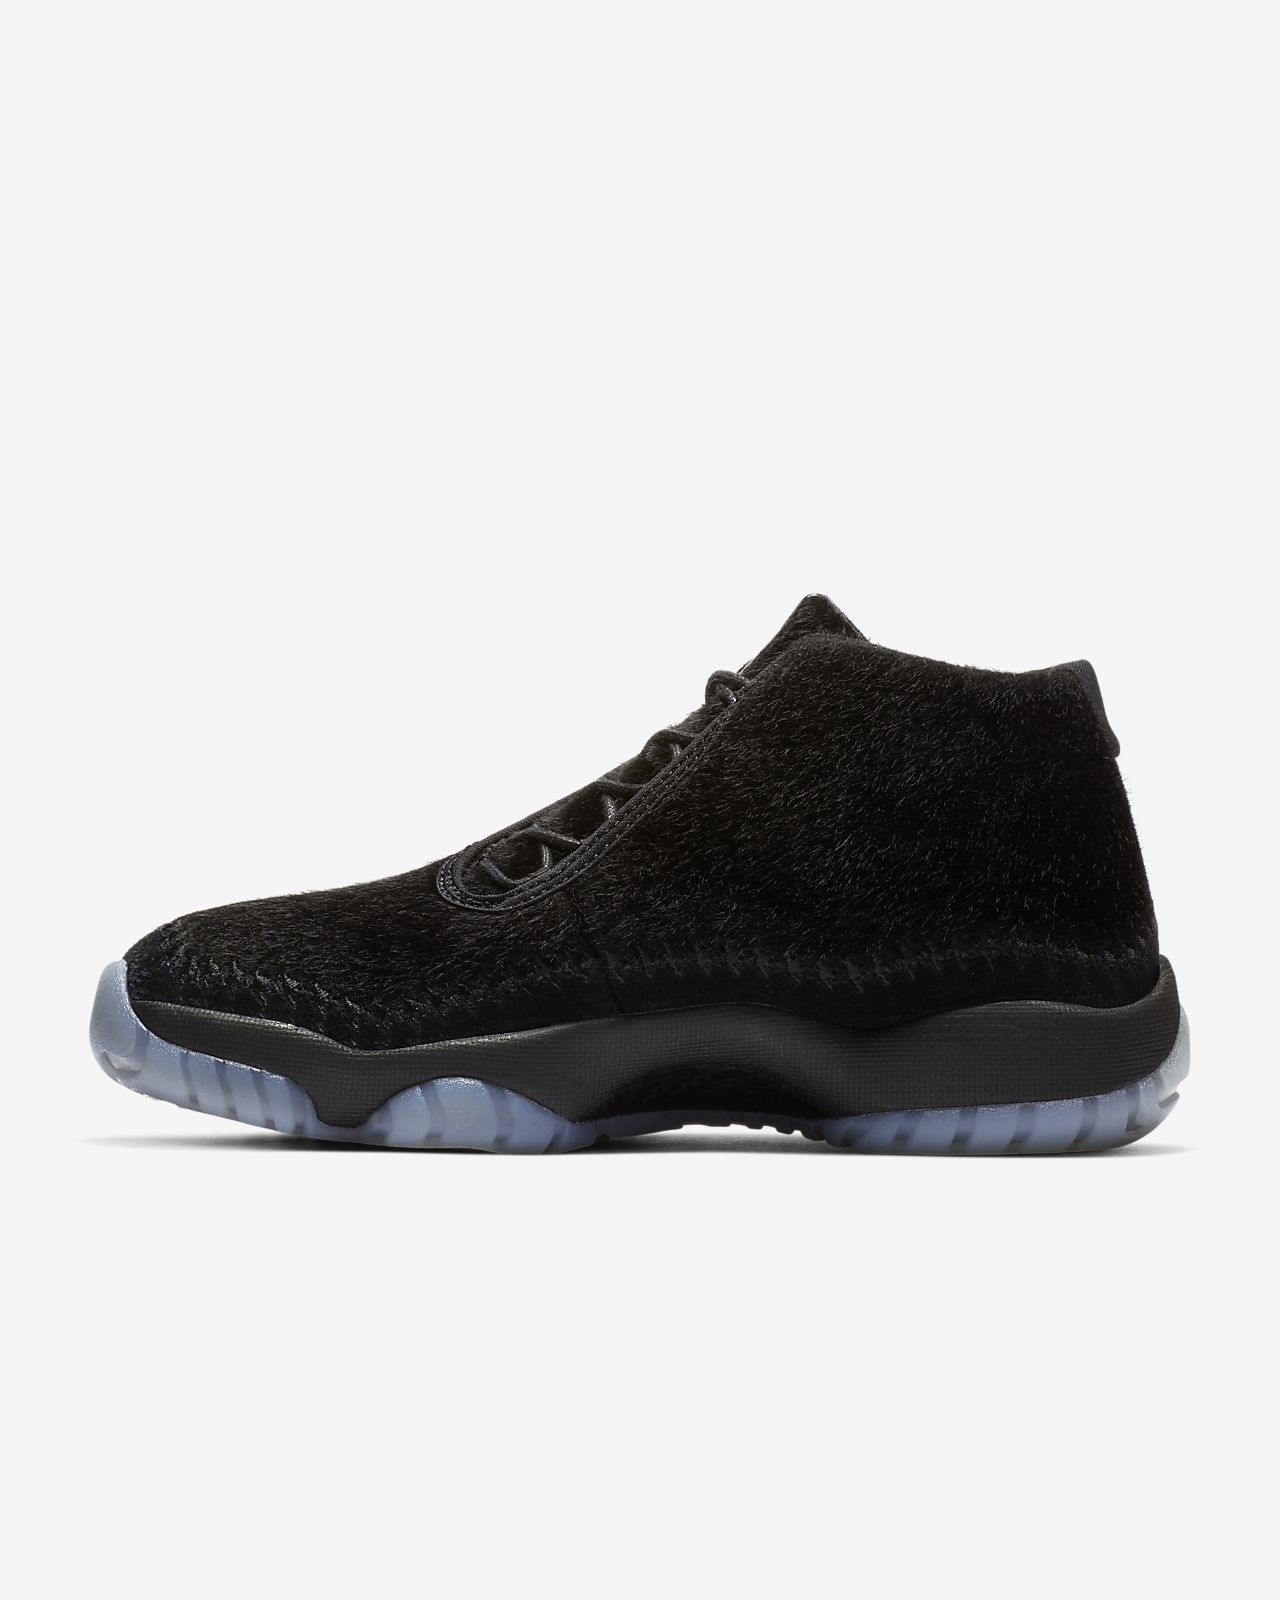 low priced 4b82b 7ec2b Low Resolution Air Jordan Future Damenschuh Air Jordan Future Damenschuh